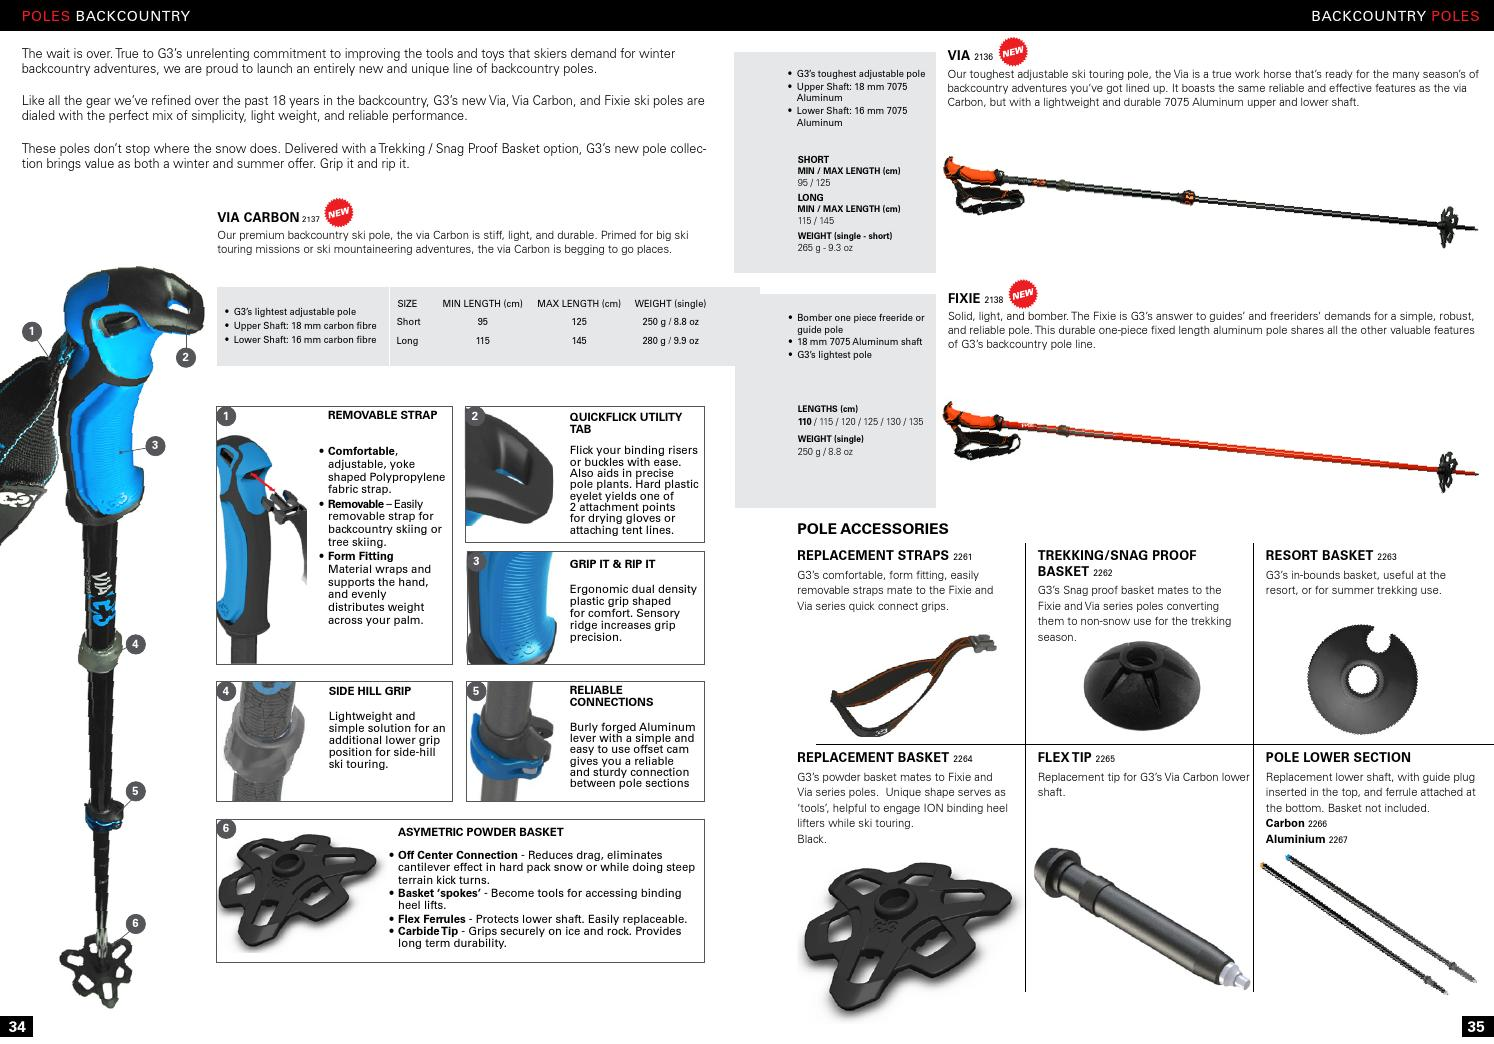 G3 14 15 Product Book By Sportive Nz Issuu